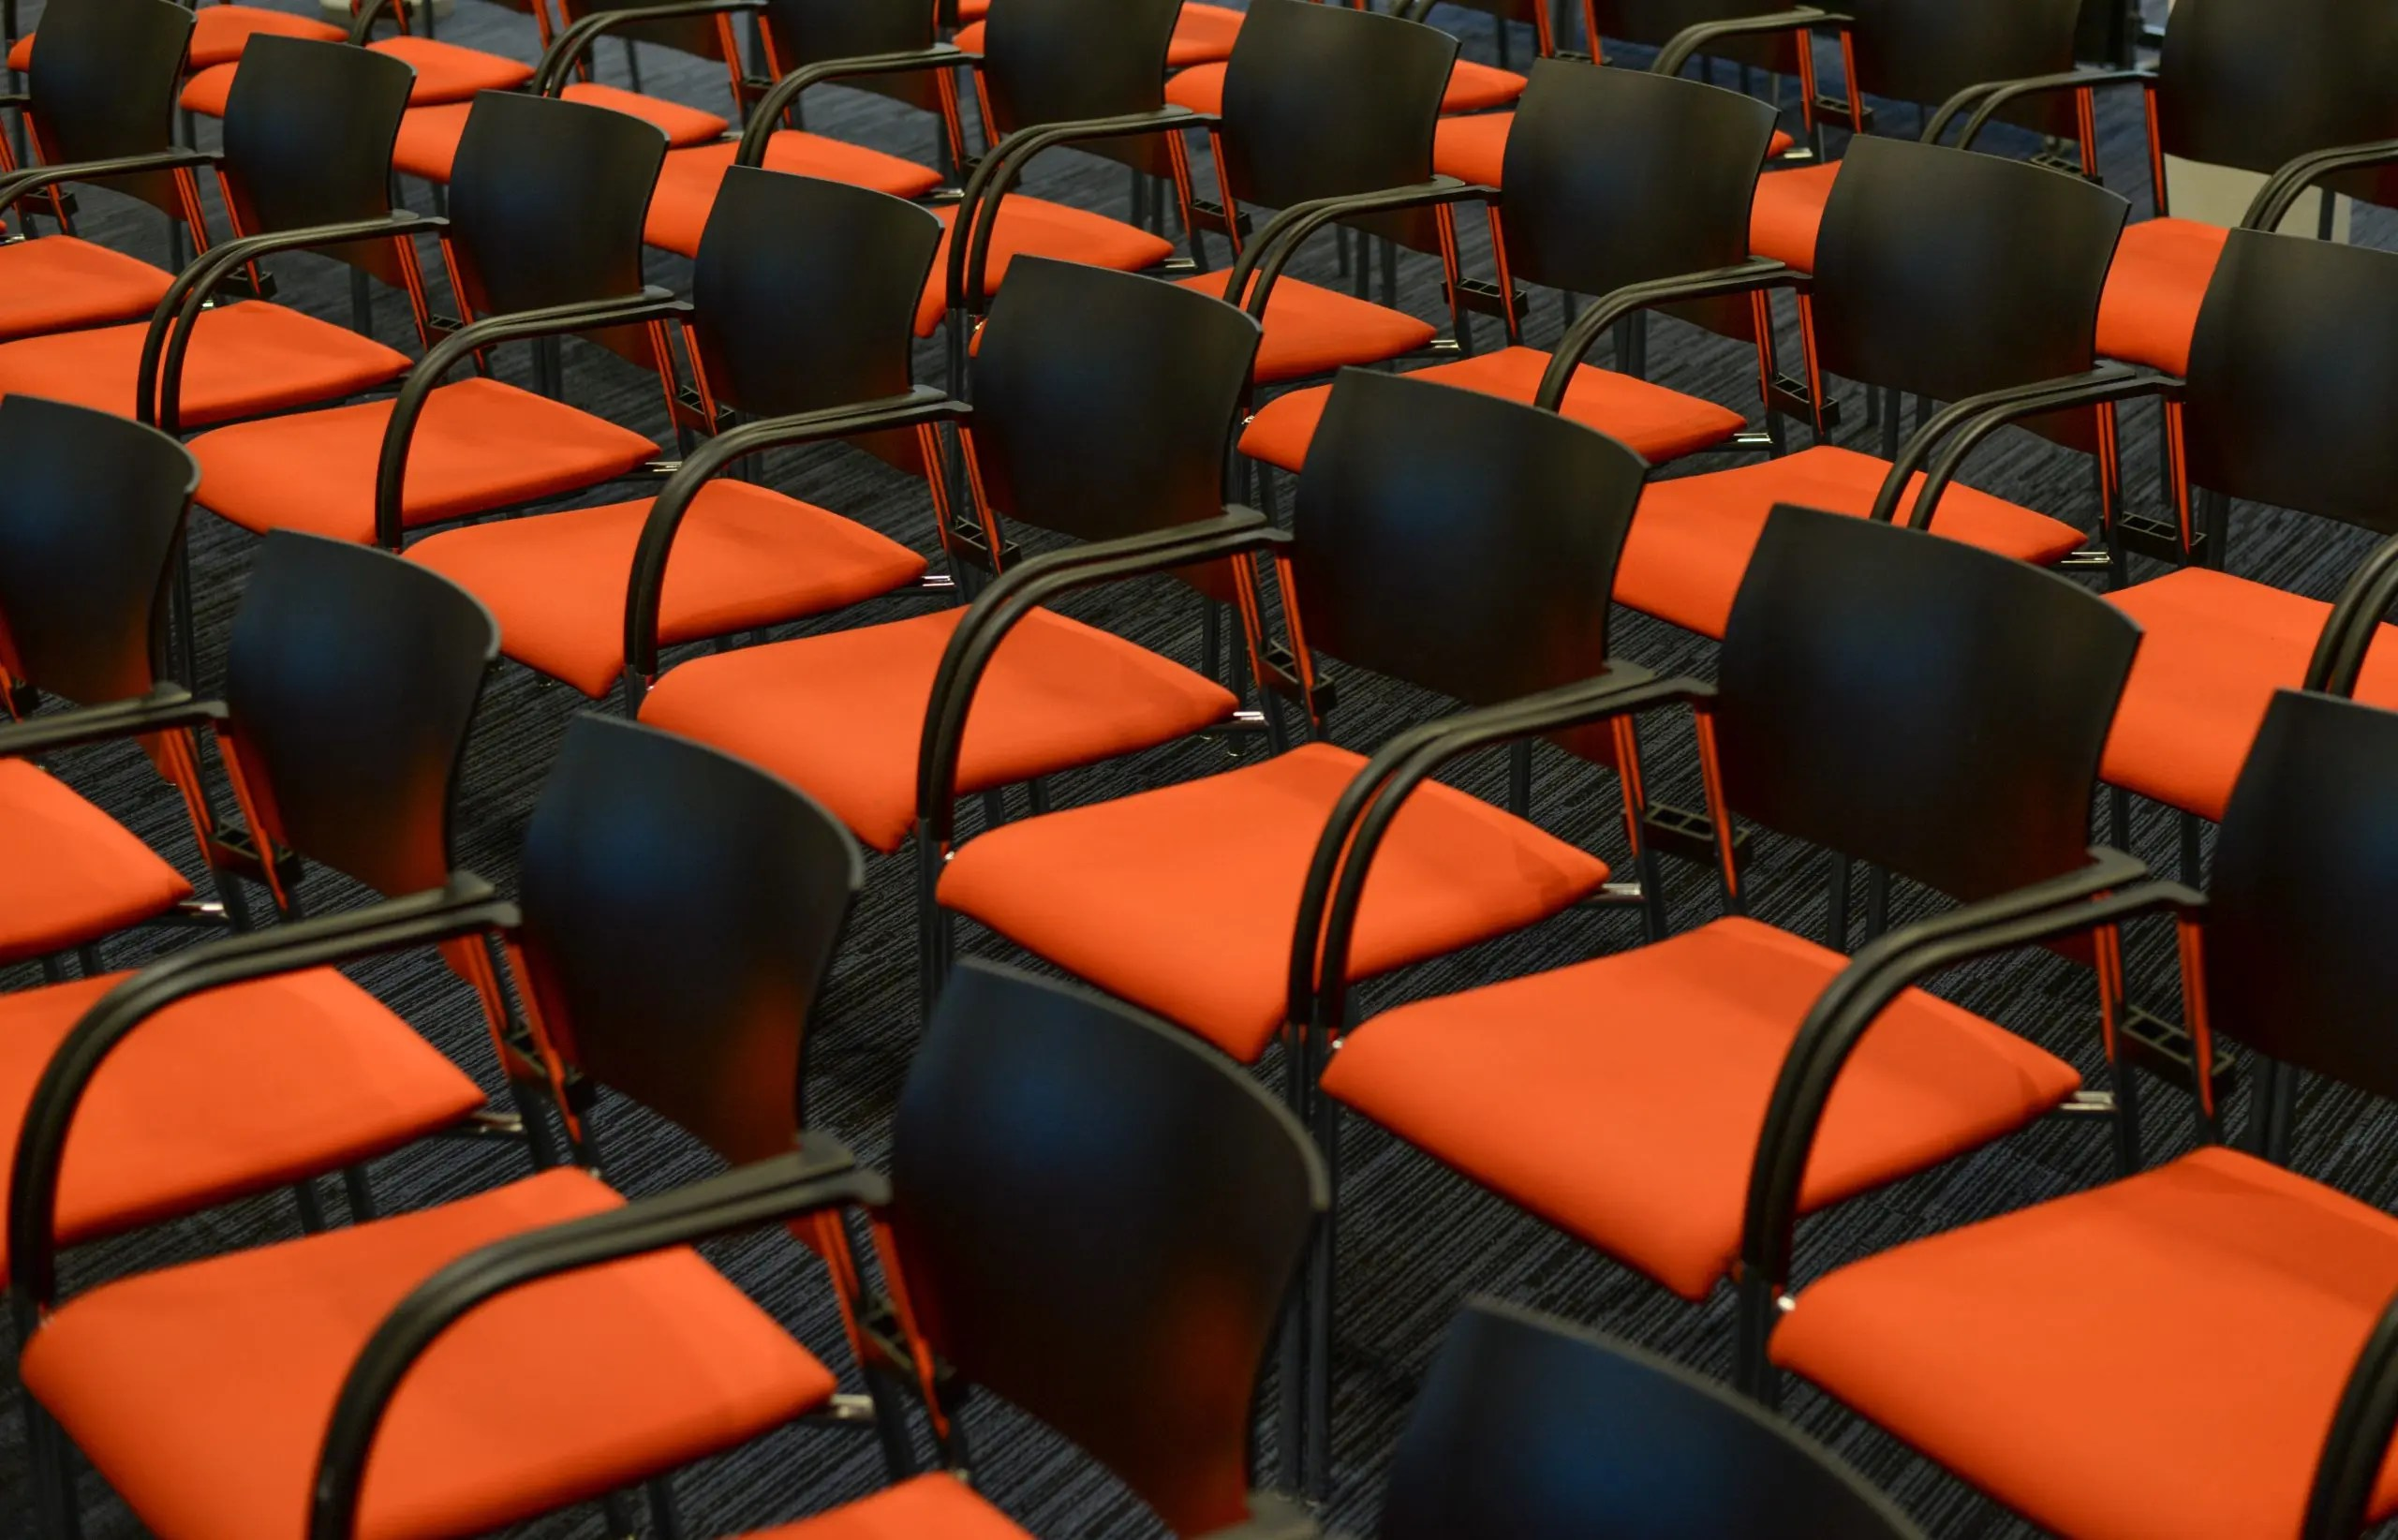 Empty orange conference chairs in rows